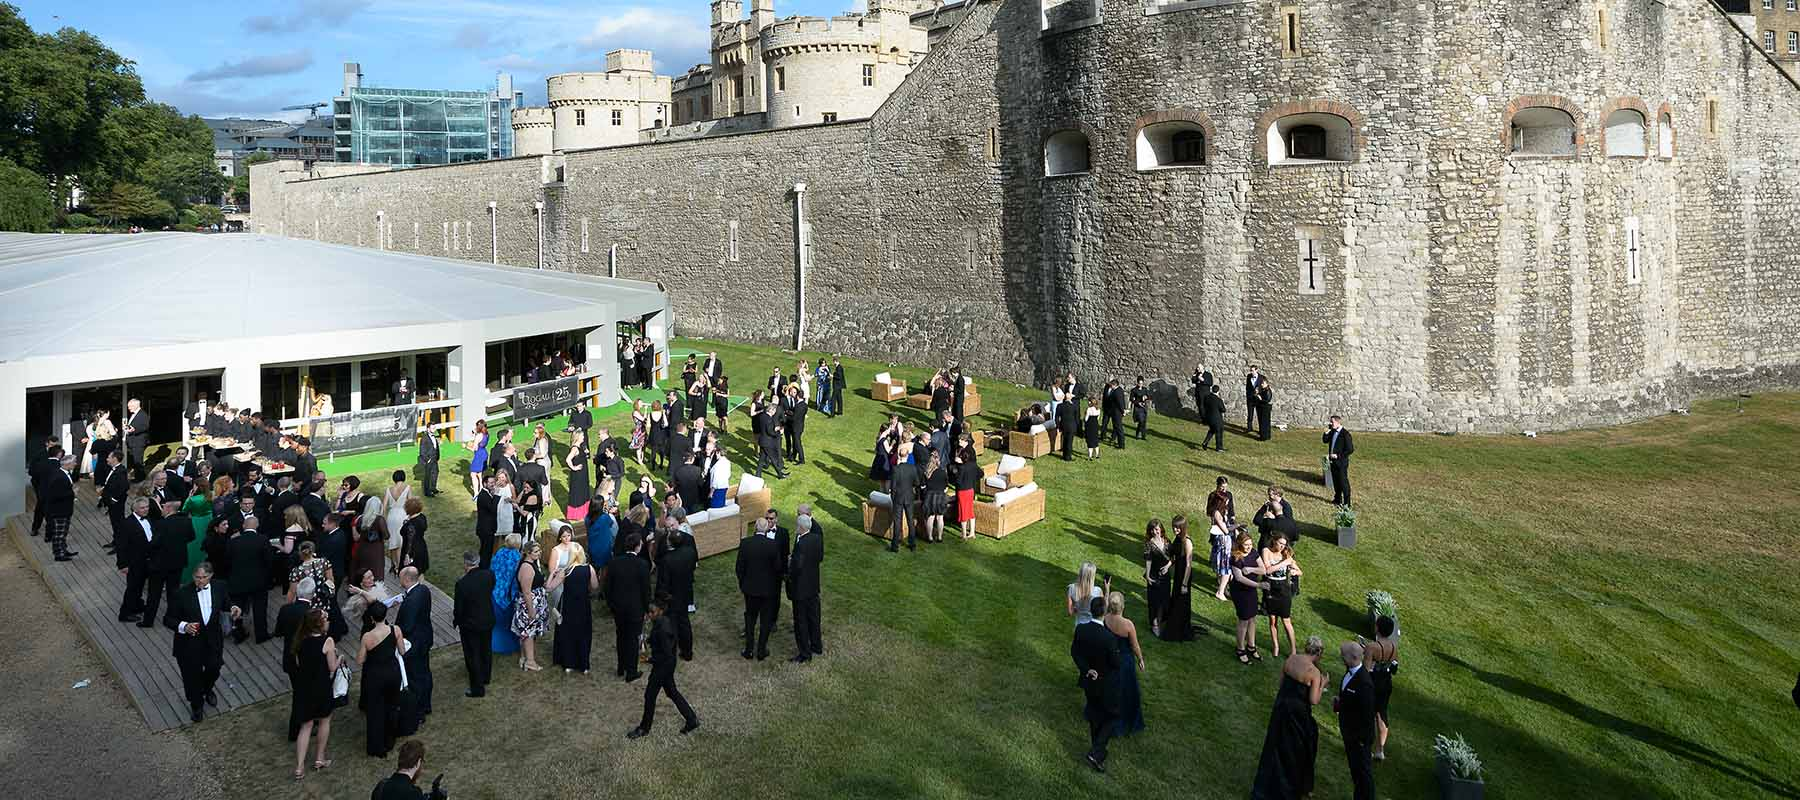 pavilion at tower of london